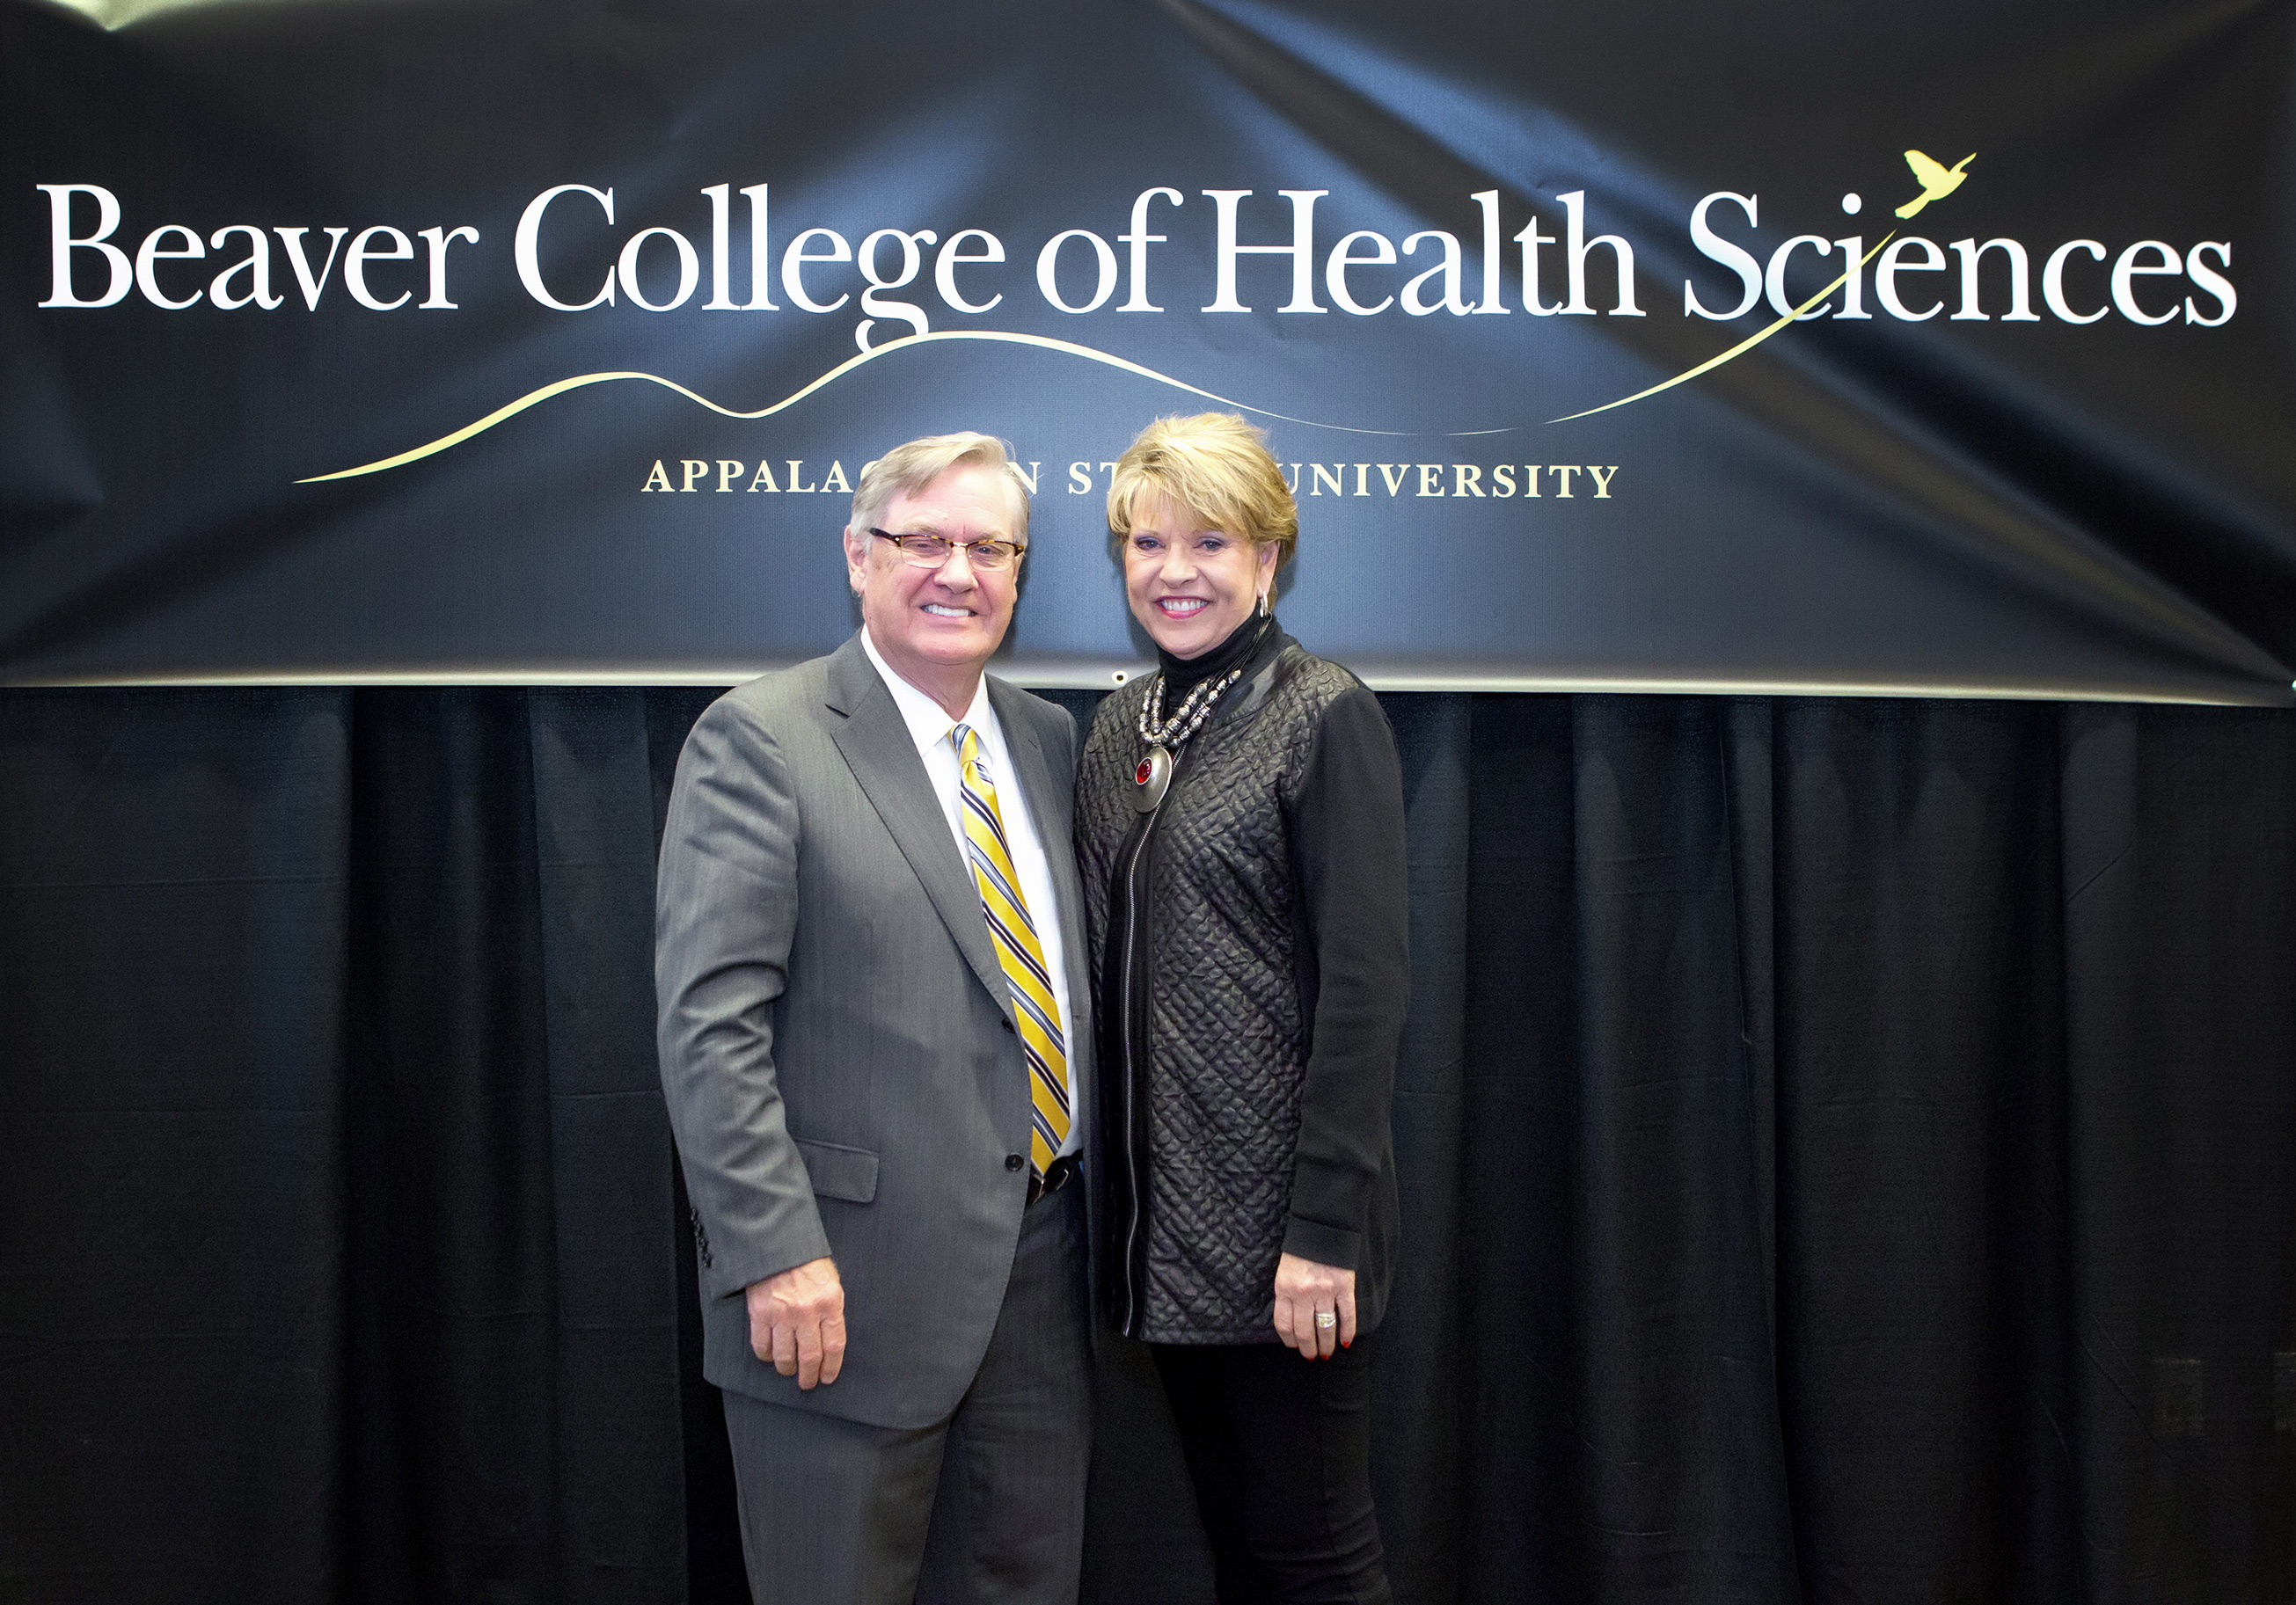 College of Health Sciences named for alumnus